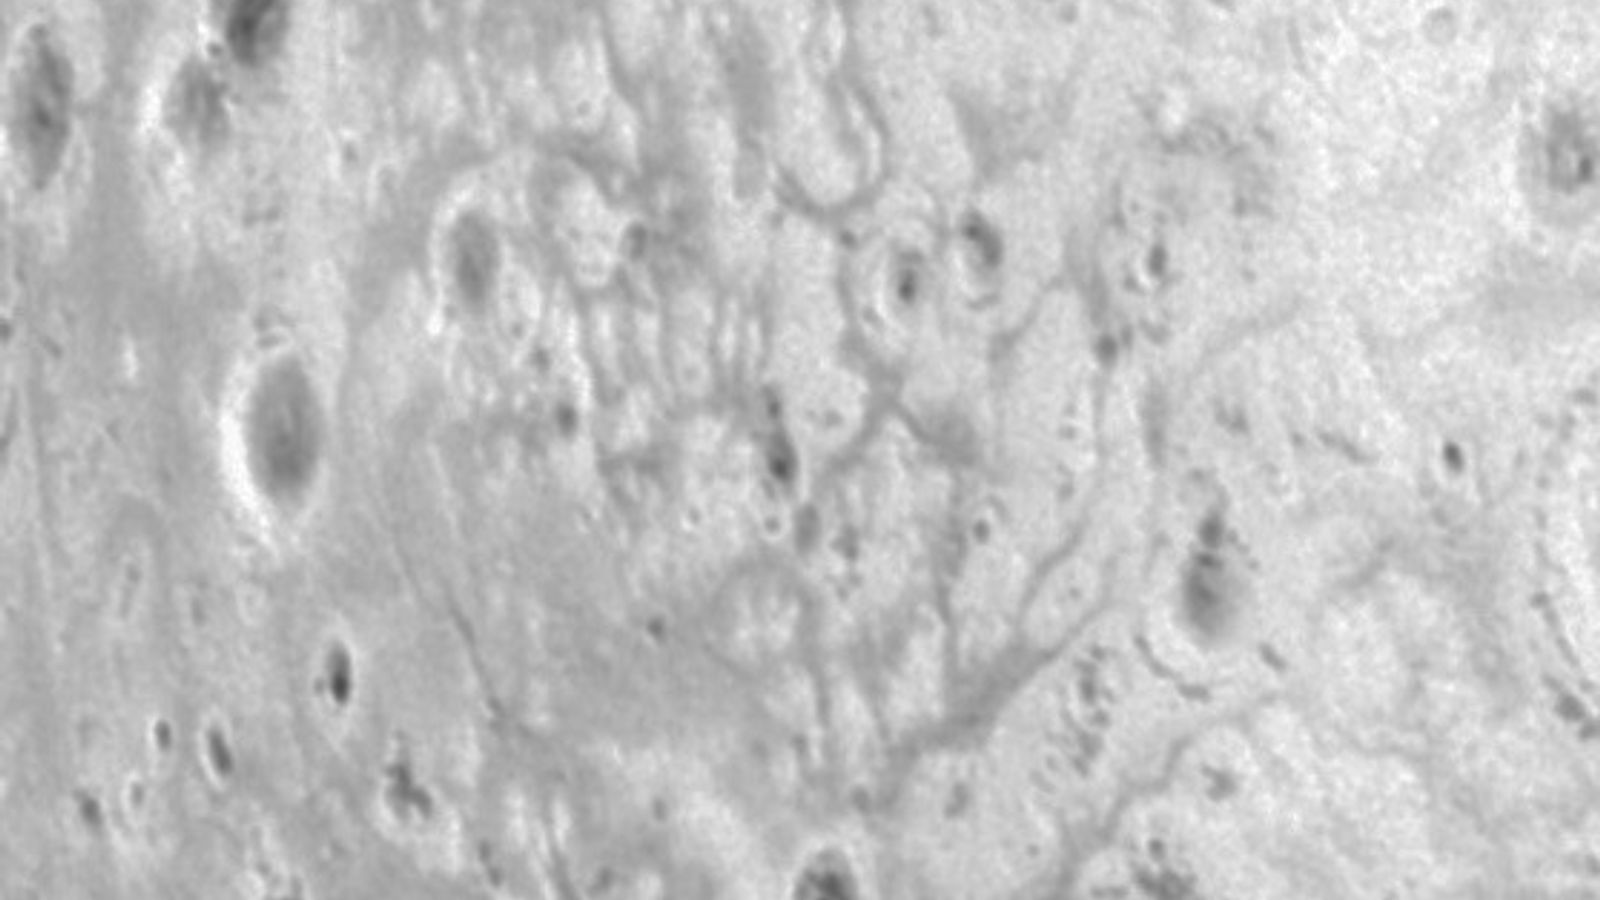 A patch of crisscrossing gullies that could have been carved by liquids